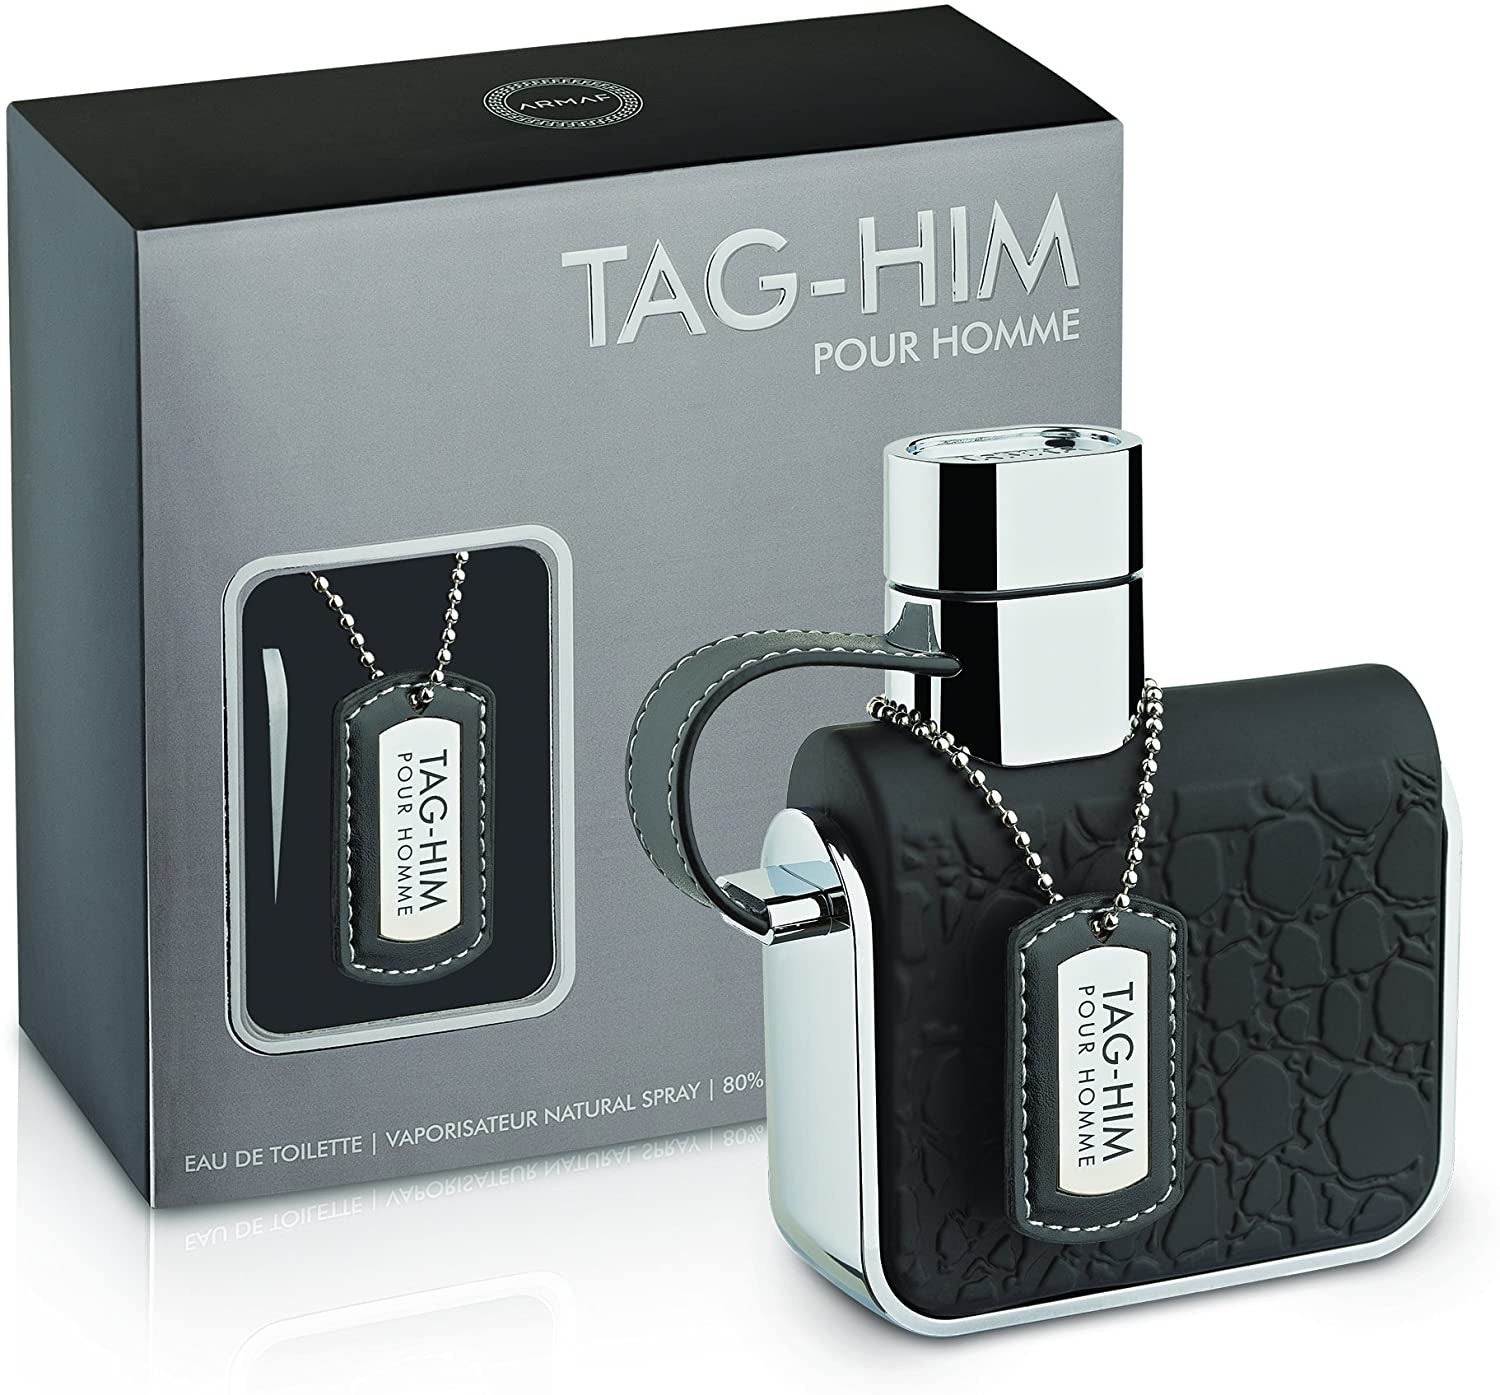 Armaf Tag-Him Pour Homme EDT 100ml